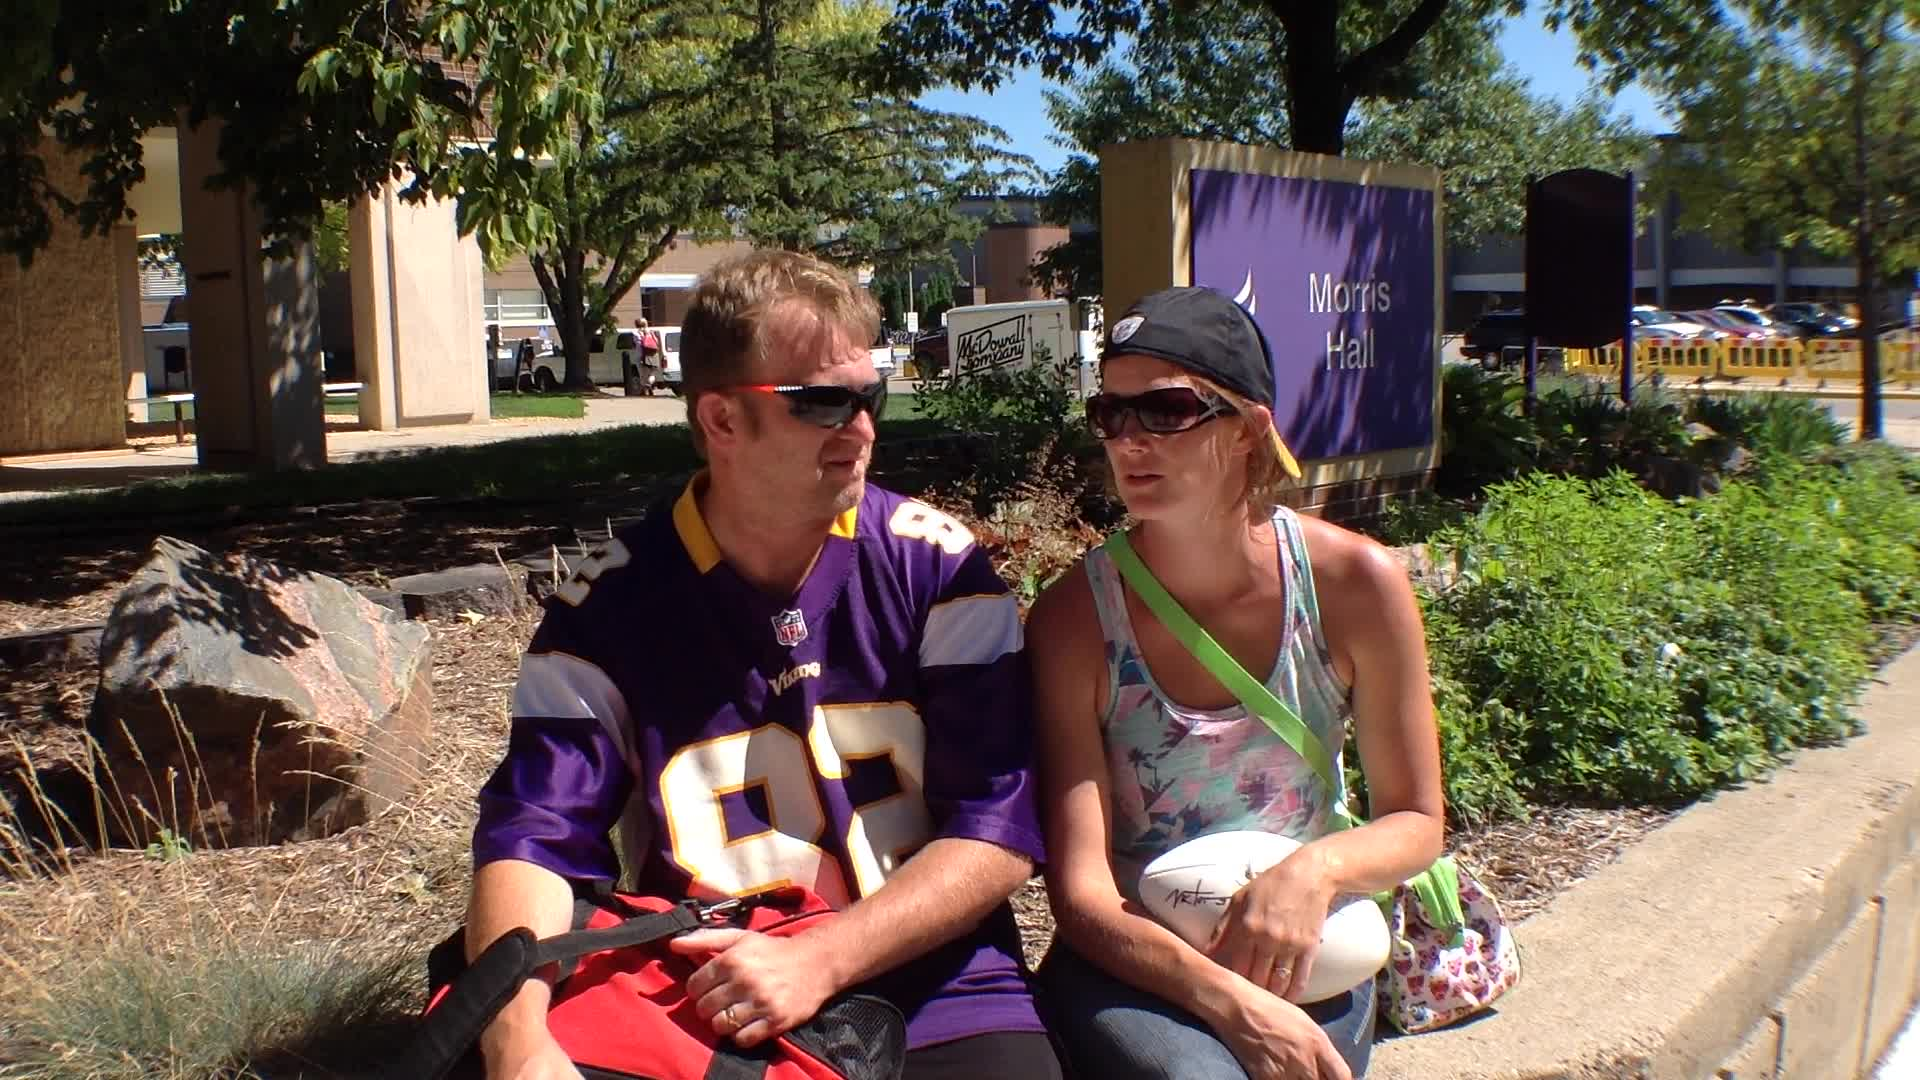 Chad Hill and Becky Hill, Clayton, WI - Fan experiences at Minnesota Vikings Training Camp at Minnesota State University, Mankato